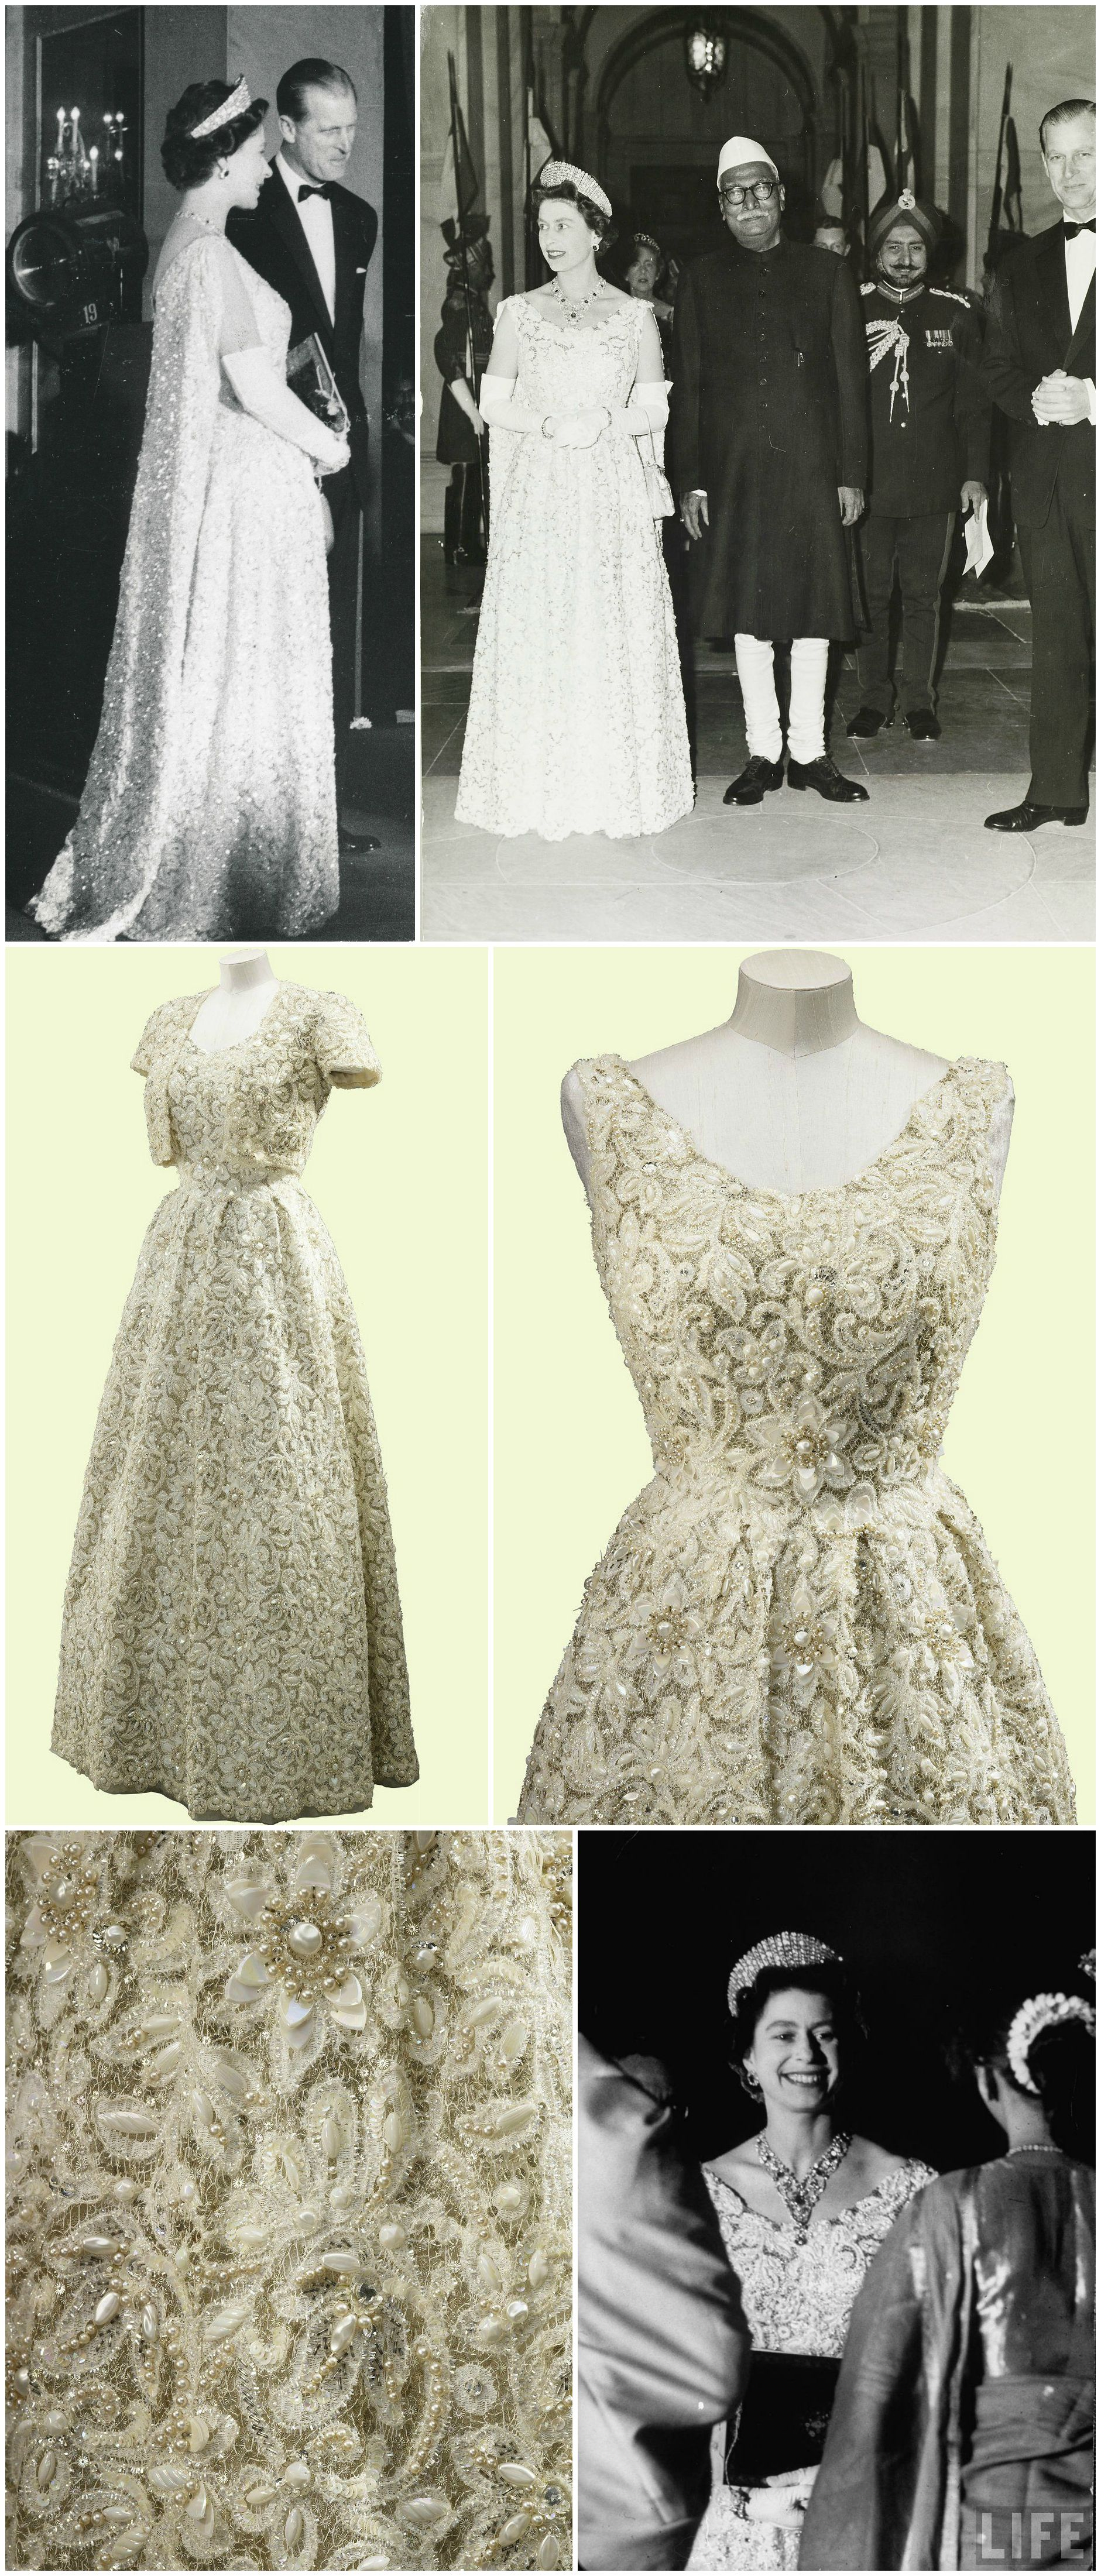 Evening dress by norman hartnell worn by hm queen elizabeth ii